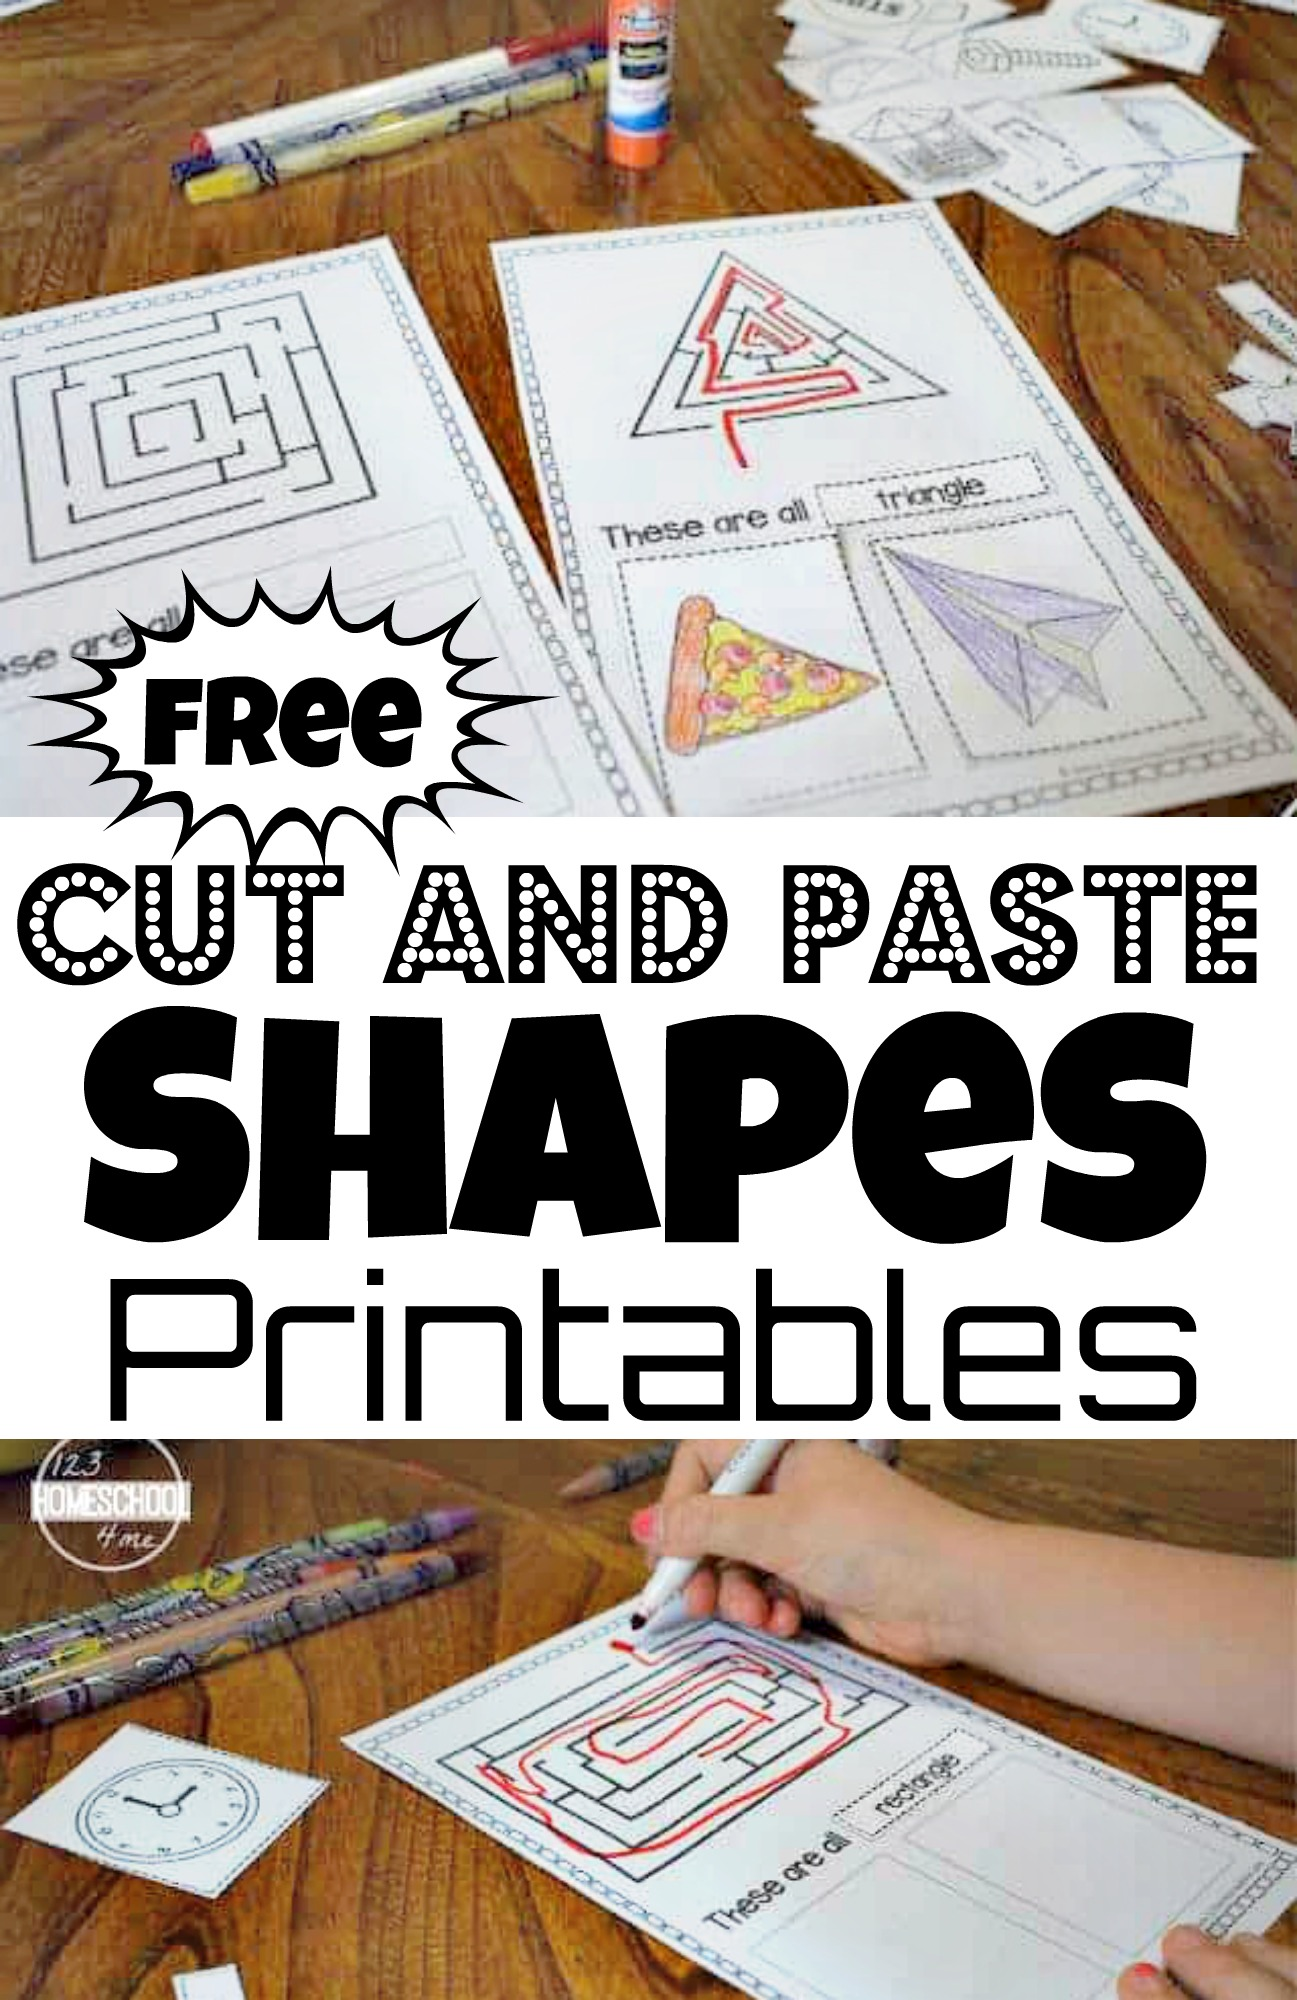 Kids will have fun making their very own shapes book with this no prep, free Cut and Paste Shapes Printable. Print the pdf file and complete the a shape maze, shape word to identify, and glue 2 real world shape pictures to each cut and paste shapes worksheets. Or turn all the shape worksheets into a book including squares, circles, triangles, ovals, hexagons, octagons, and rectangles. This shapes cut and paste is a great activity for preschool, pre-k, kindergarten, and first grade students.